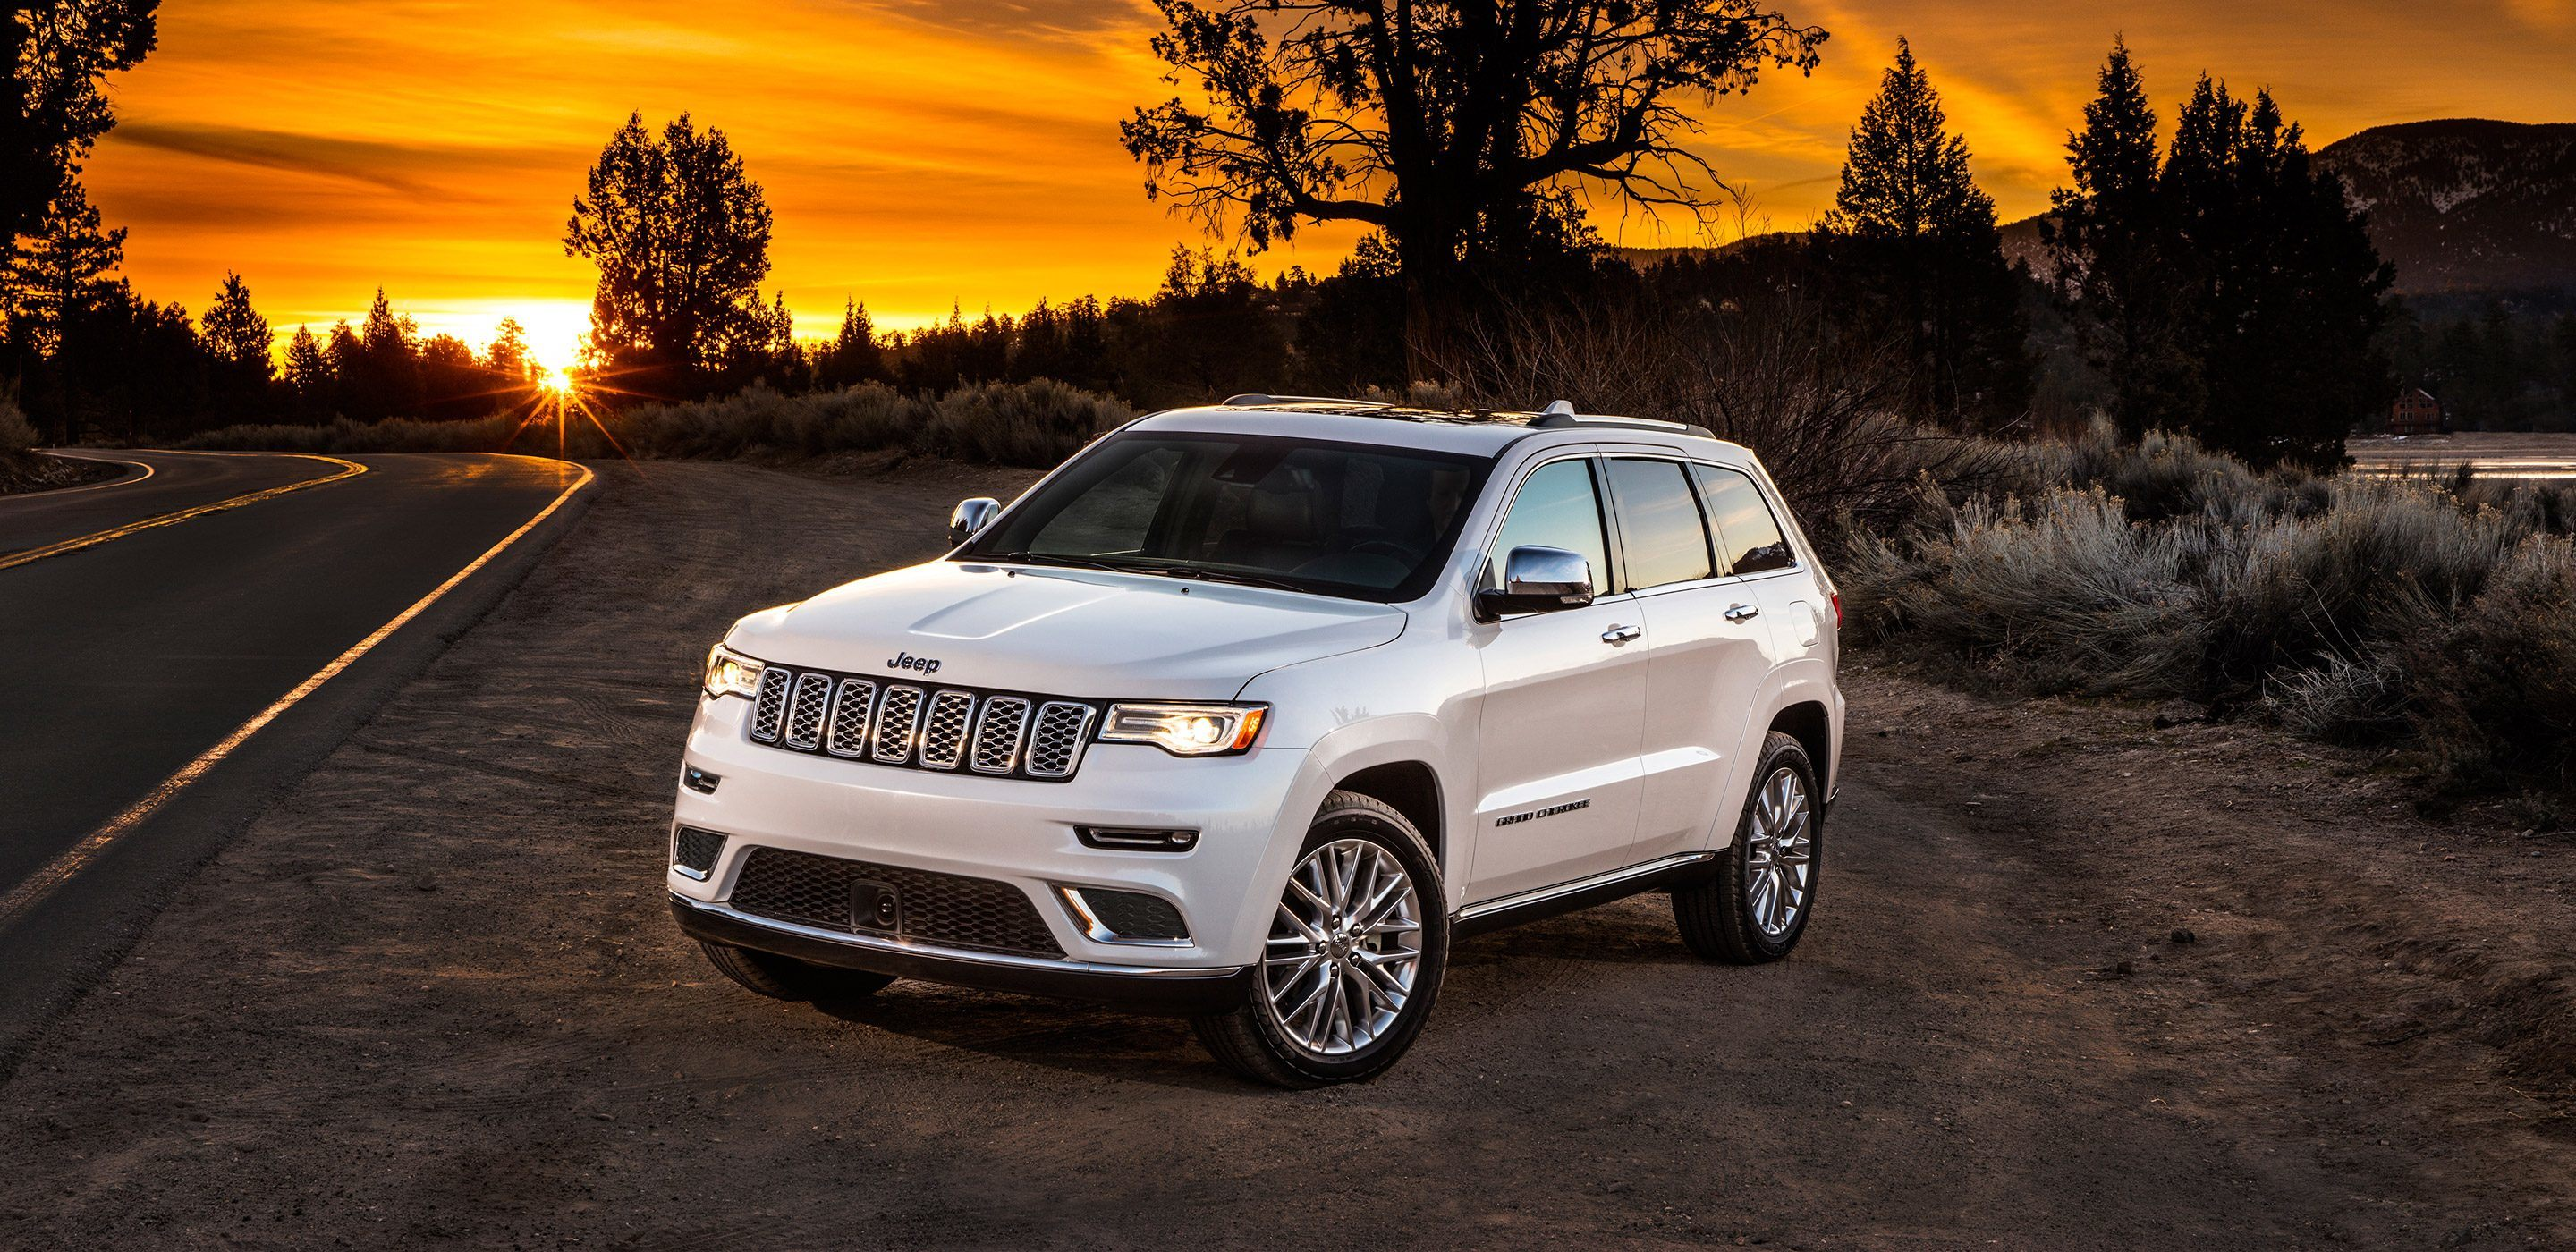 Comparing The Jeep Grand Cherokee Ford Edge In Willoughby Oh